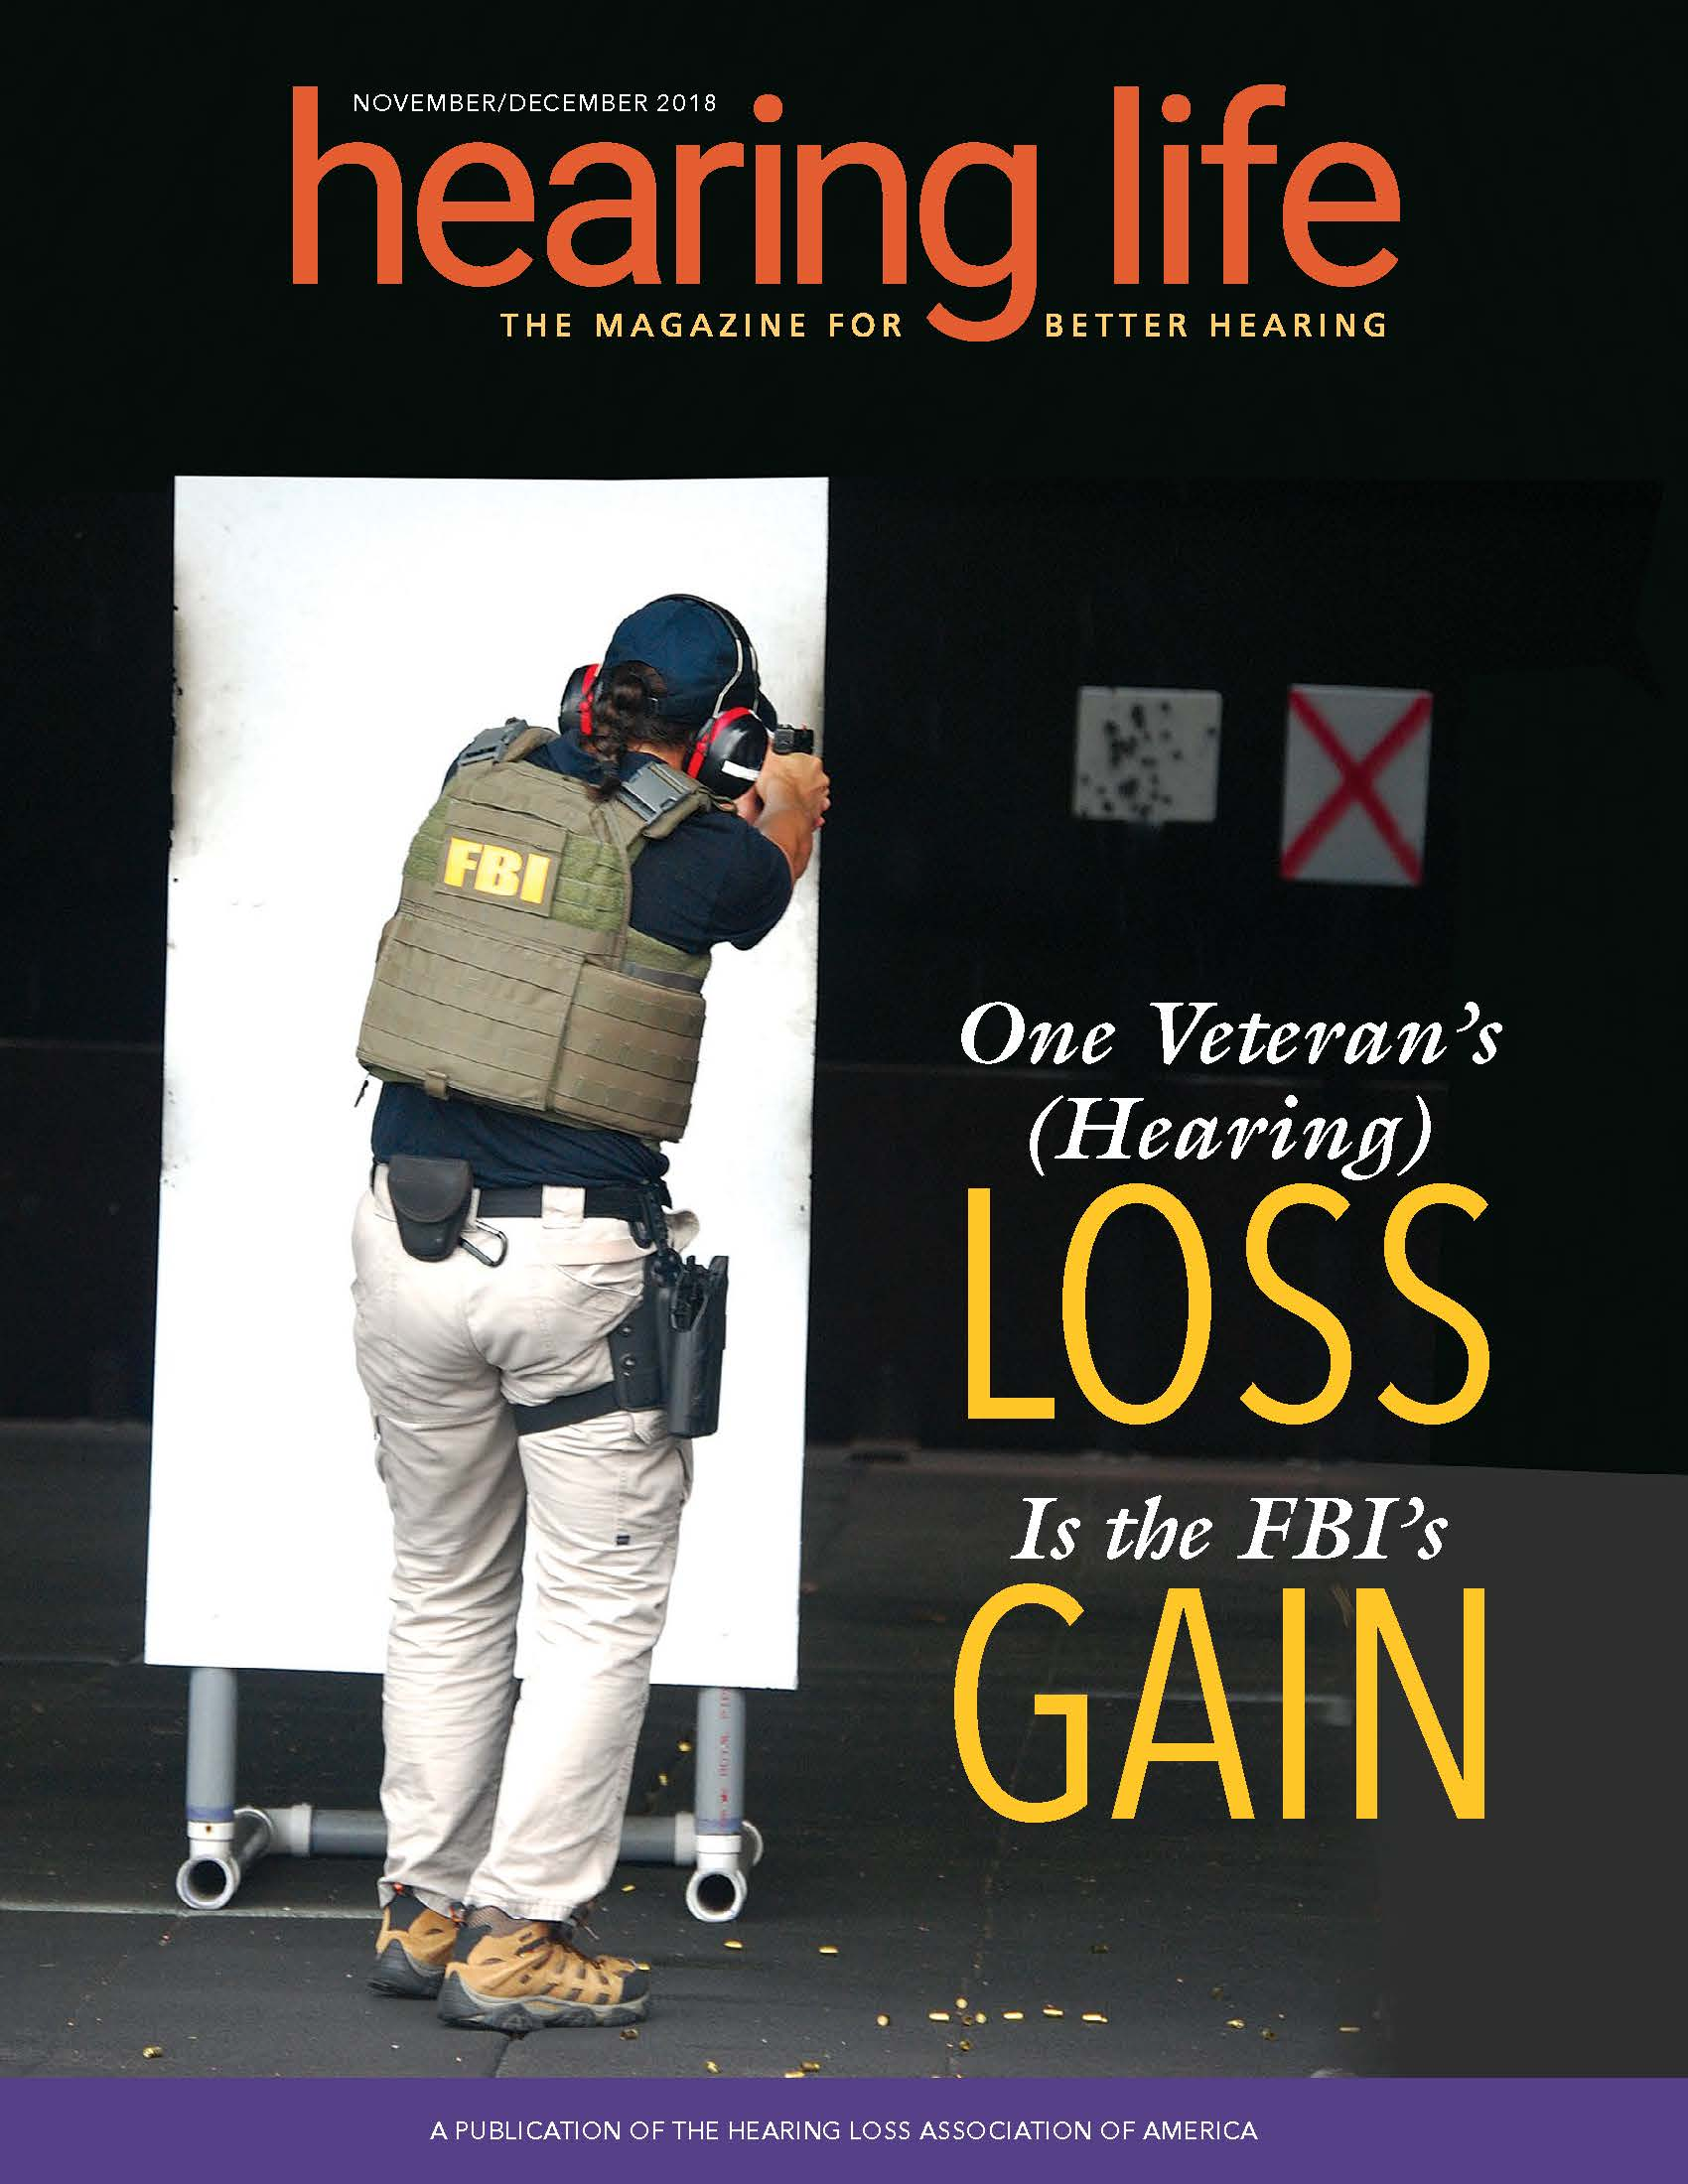 HLAA HearingLife 2018 Nov/Dec Cover